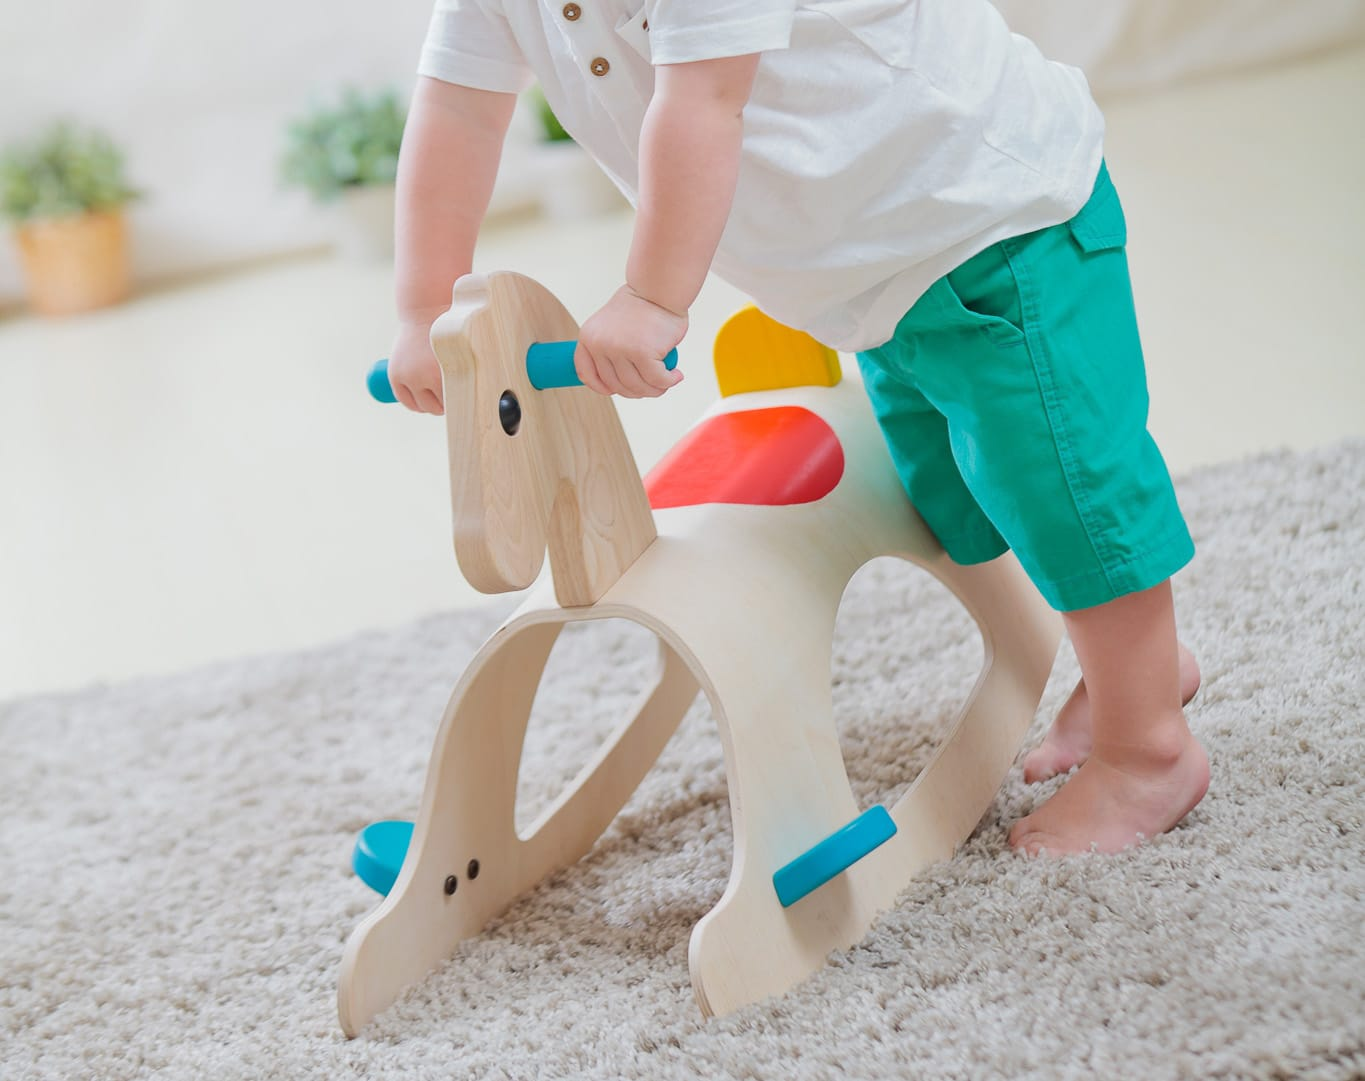 3403_PlanToys_PALOMINO_Active_Play_Gross_Motor_Coordination_Imagination_Language_and_Communications_2yrs_Wooden_toys_Education_toys_Safety_Toys_Non-toxic_2.jpg